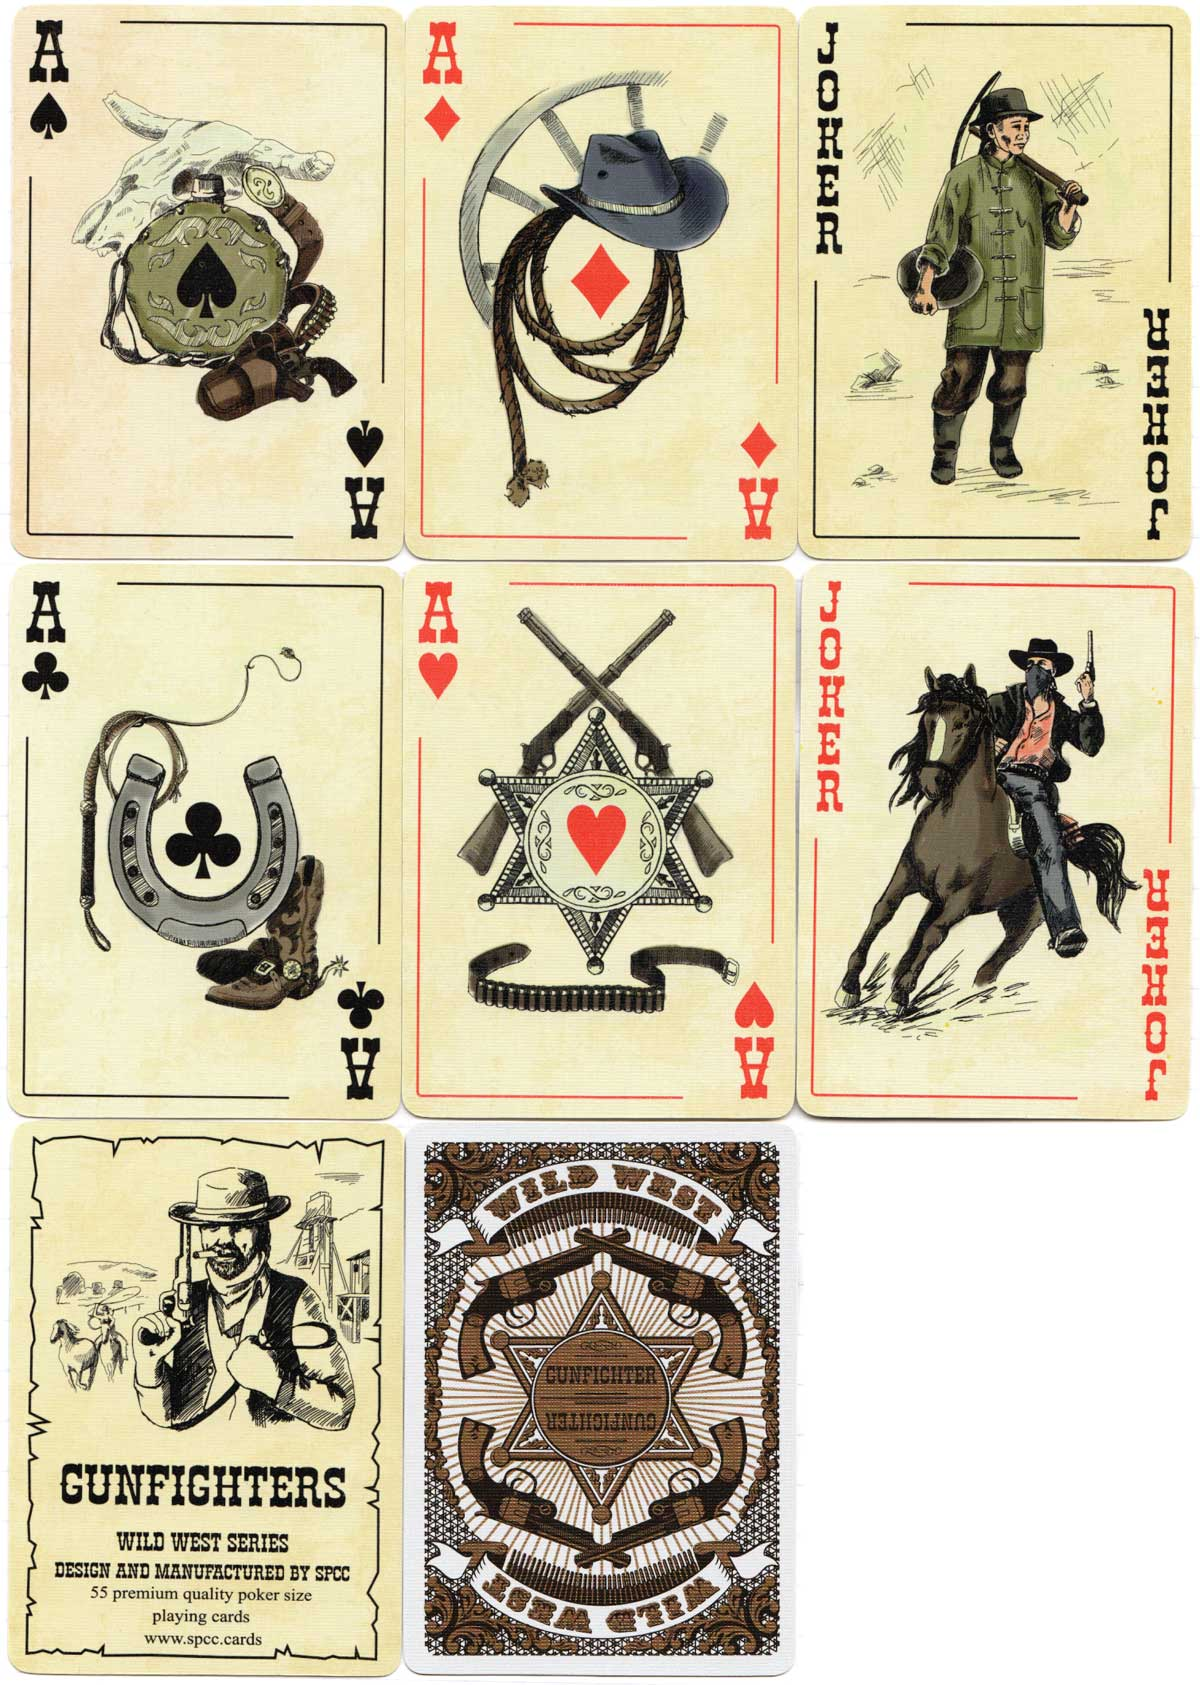 Gunfighters playing cards from the Wild West Series by SPCC, 2018